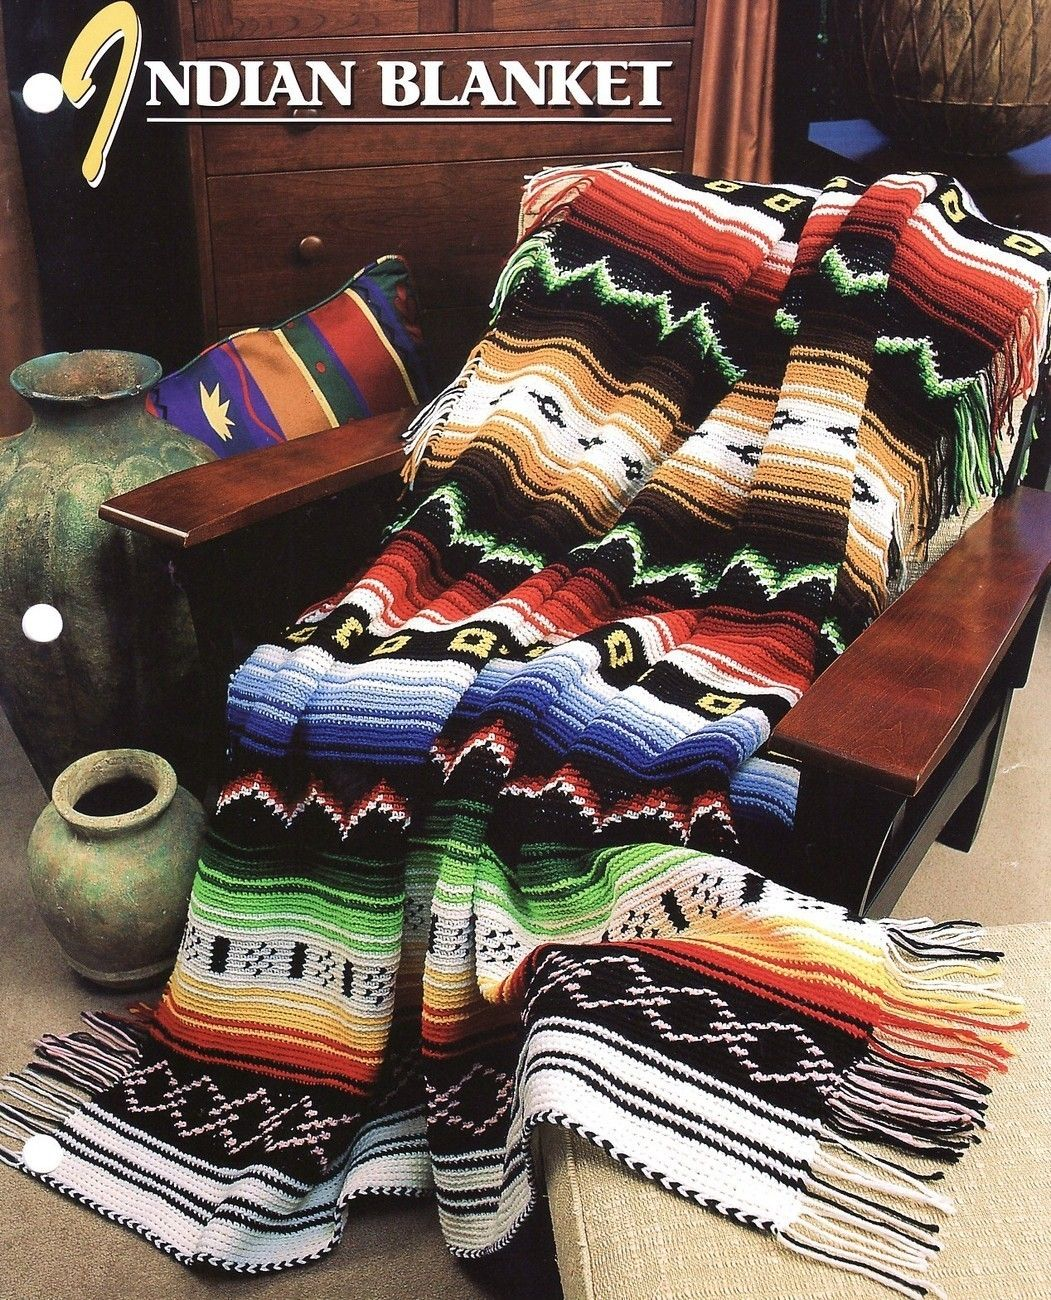 Indian blanket crochet pattern afghan throw annies attic southwest indian blanket crochet pattern afghan throw annies attic southwest easy bankloansurffo Choice Image